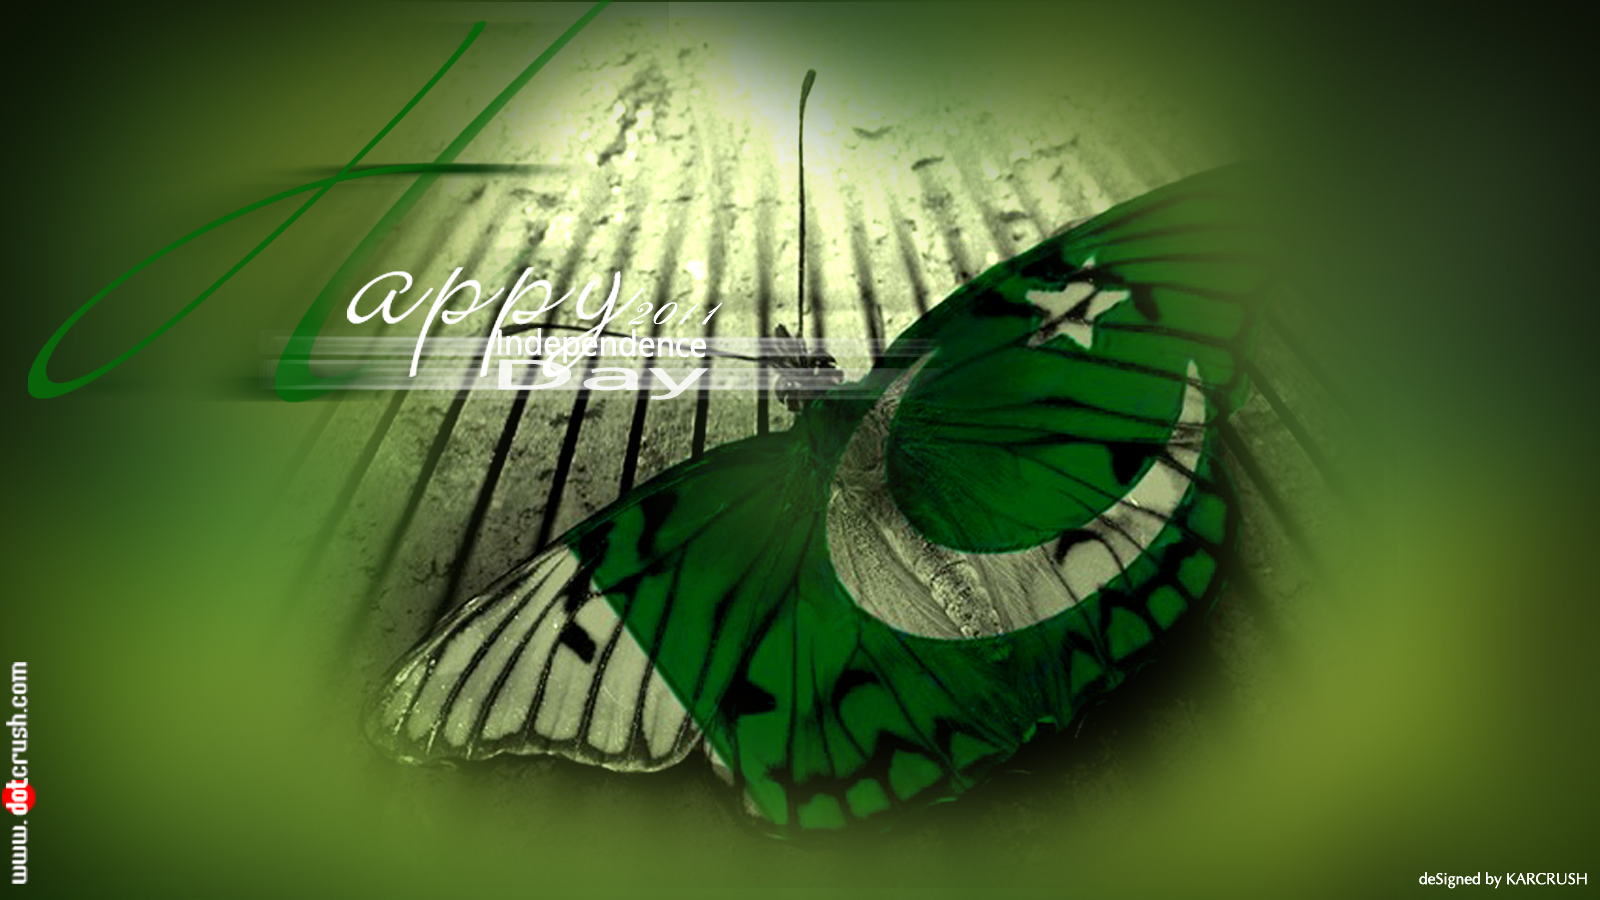 http://3.bp.blogspot.com/-66wdKxyPj98/TkTh3TotU8I/AAAAAAAAAvY/bWlCfPKiPfY/s1600/pakistan-independece-day-14-august-2011-backgrounds-wallpapers-38.jpg